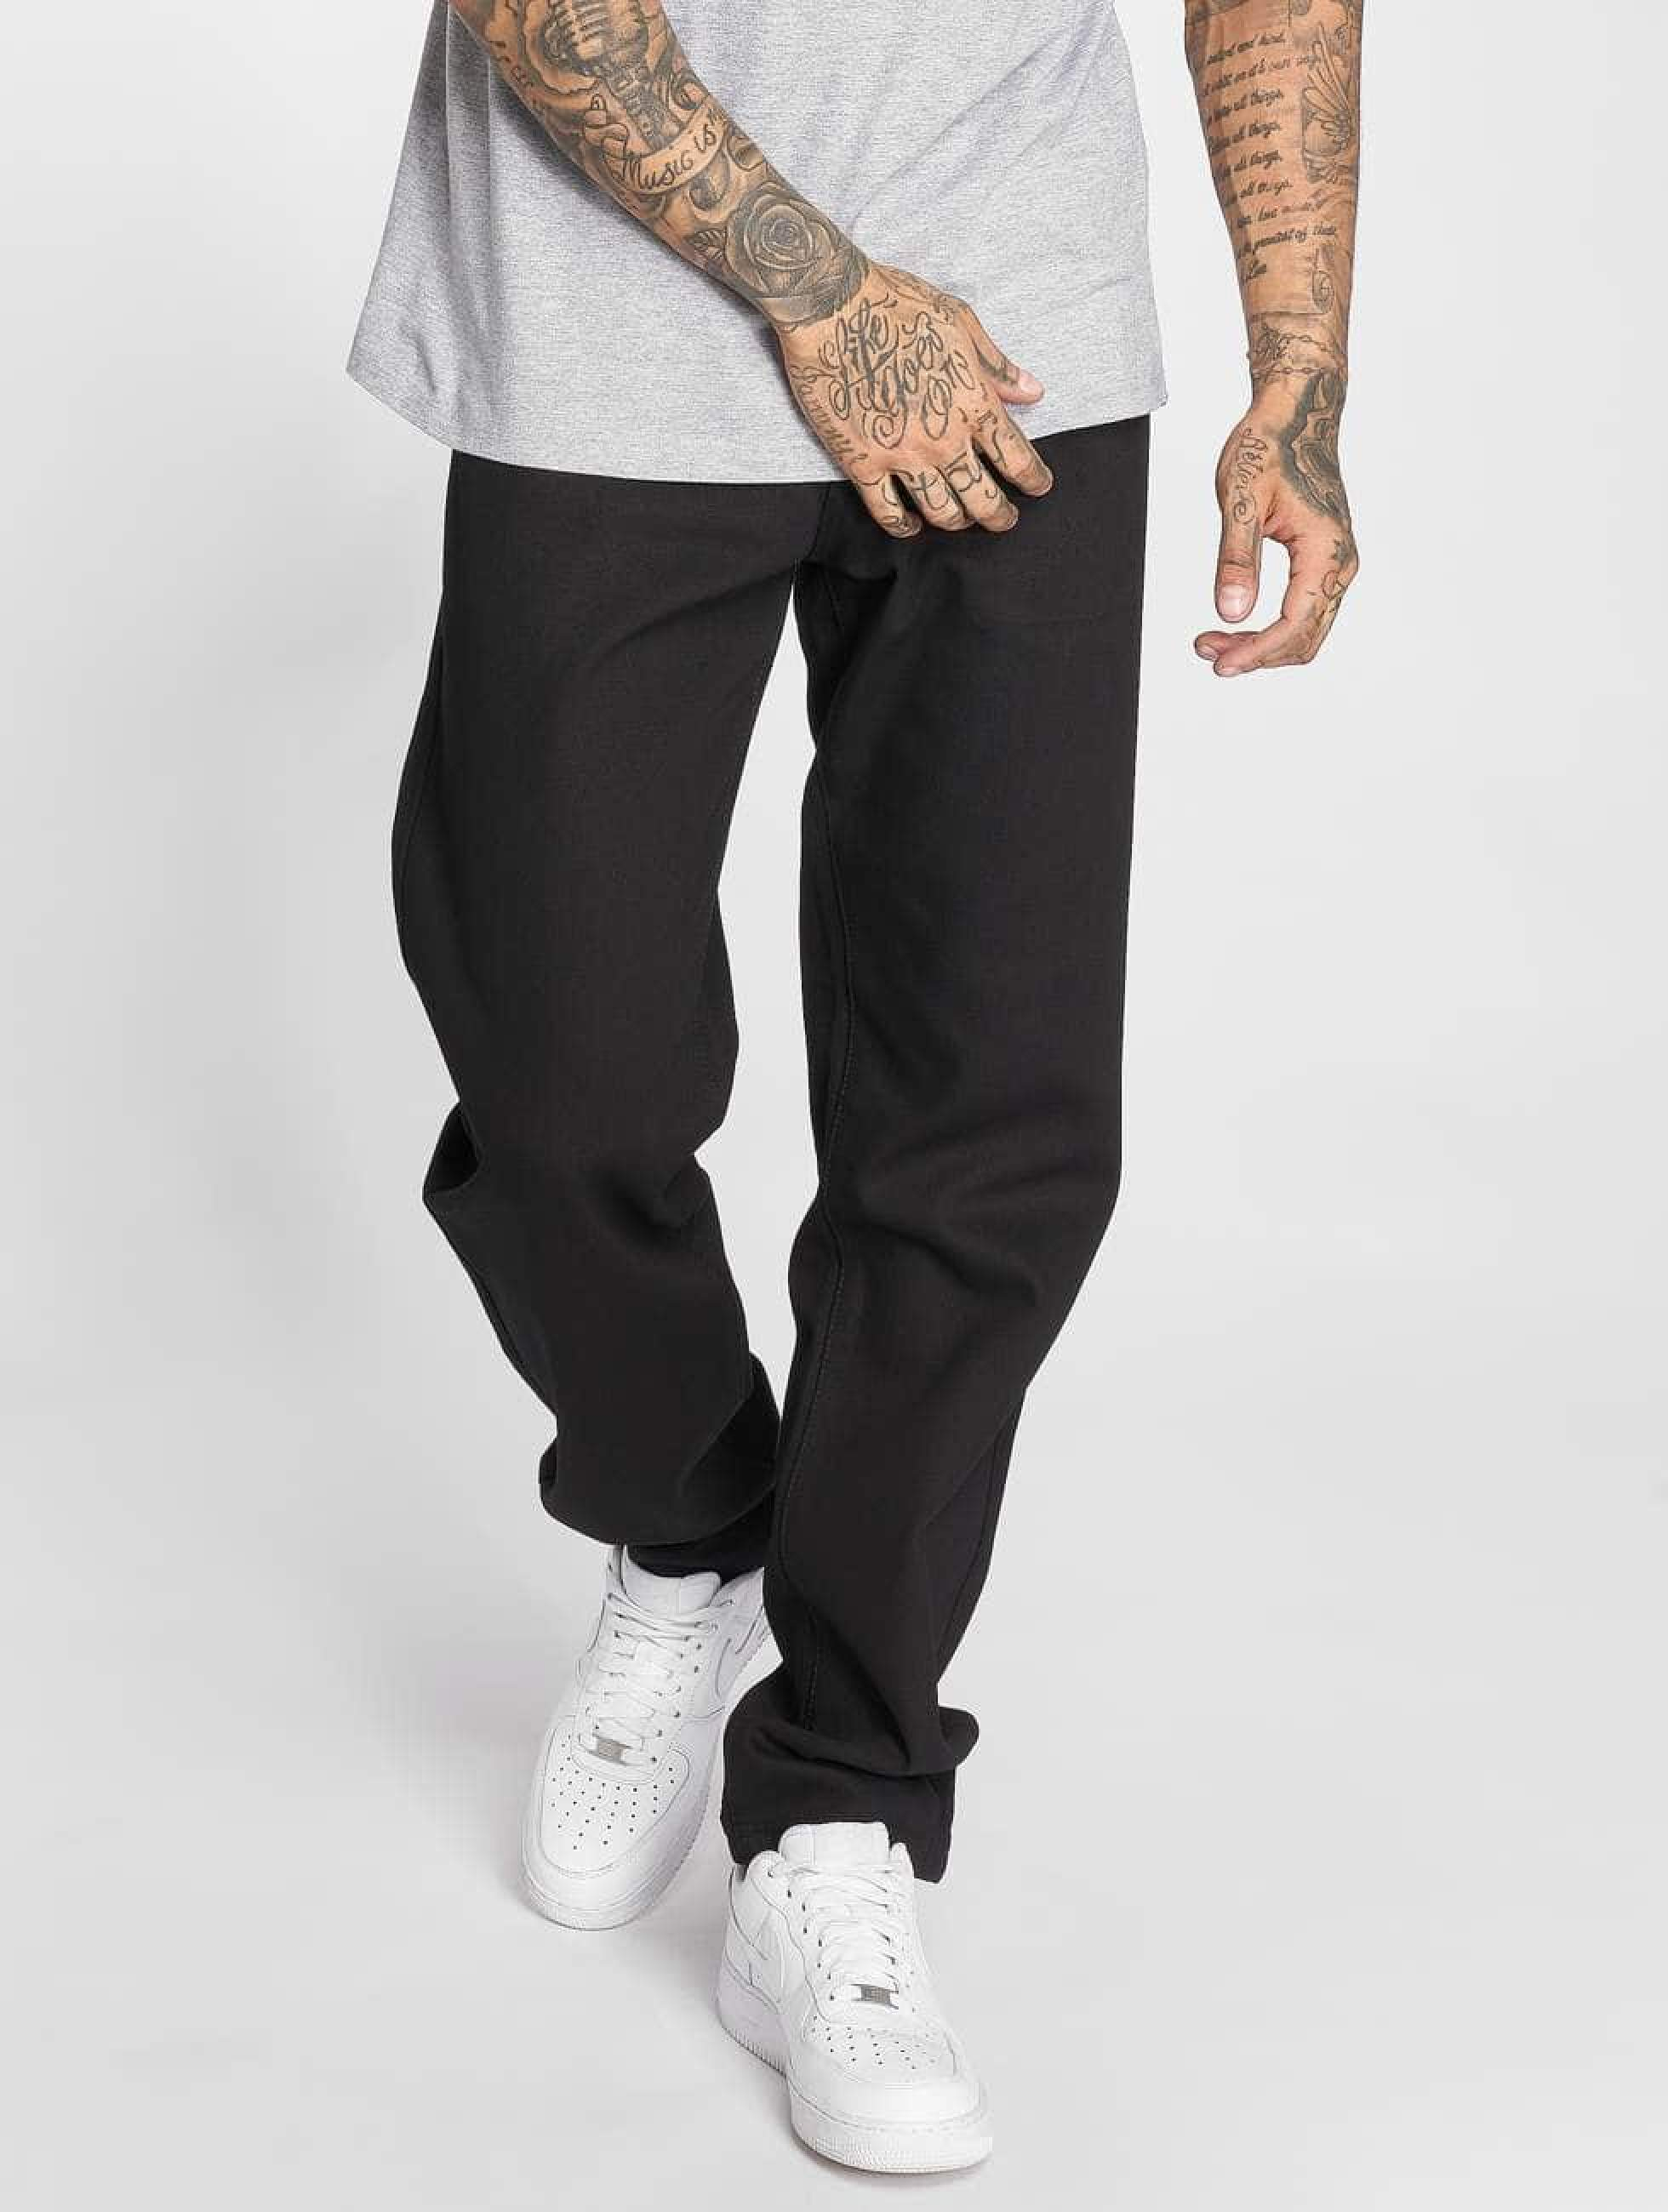 Thug Life / Carrot Fit Jeans B . Denim in black W 34 L 34